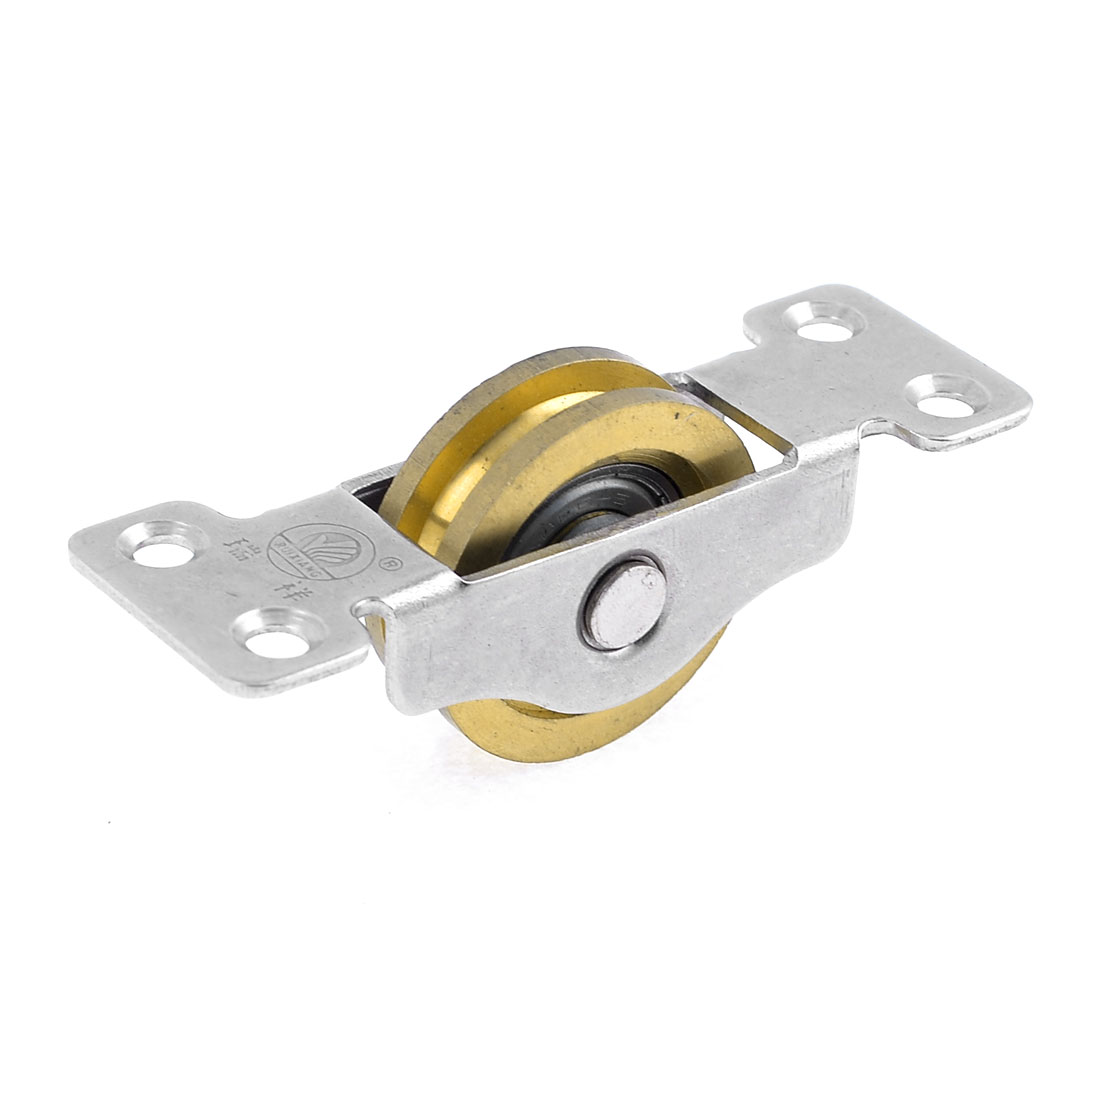 "Gold Tone 1.4"" Dia Single Roller Double Bearing Window Pulley"